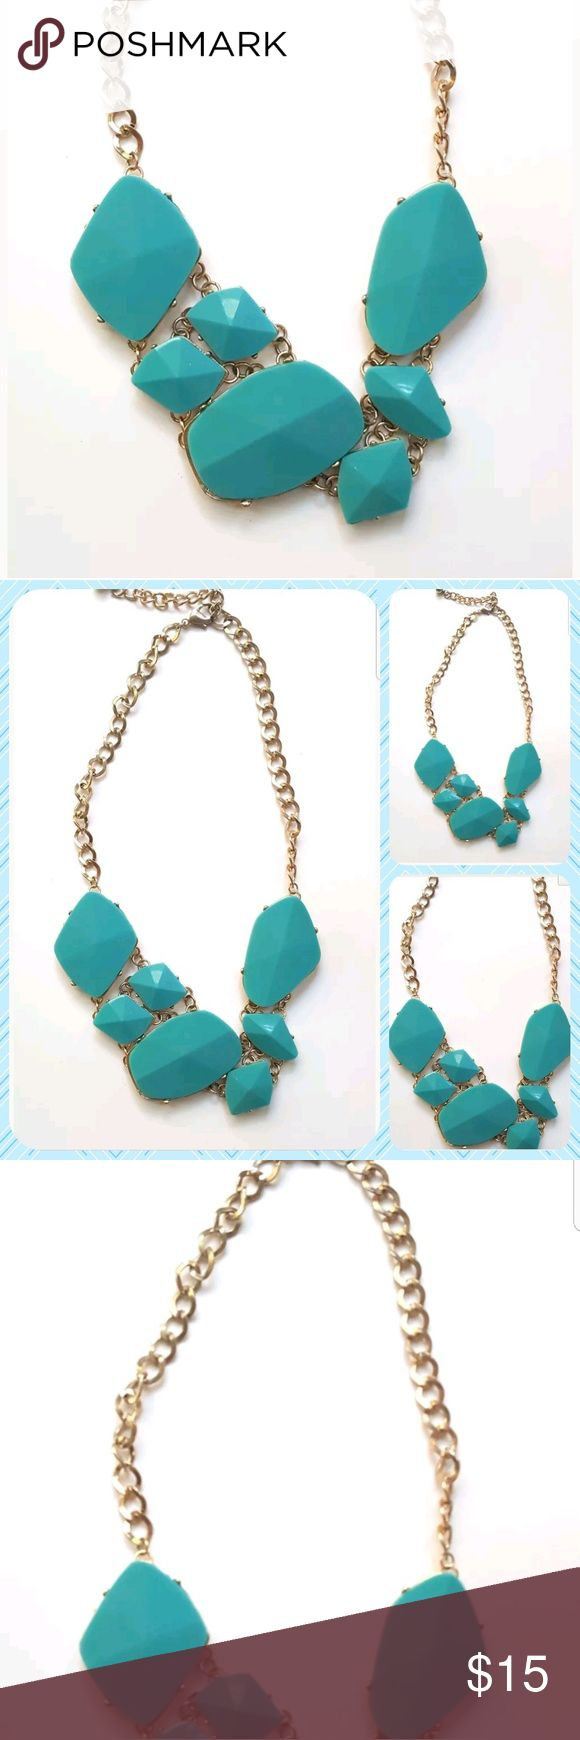 Saks Off 5th Avenue Statement Necklace Turquoise Saks Off 5th Avenue Statement Necklace Turquoise Color Fashion Jewelry   VGUC Saks Fifth Avenue Jewelry Necklaces